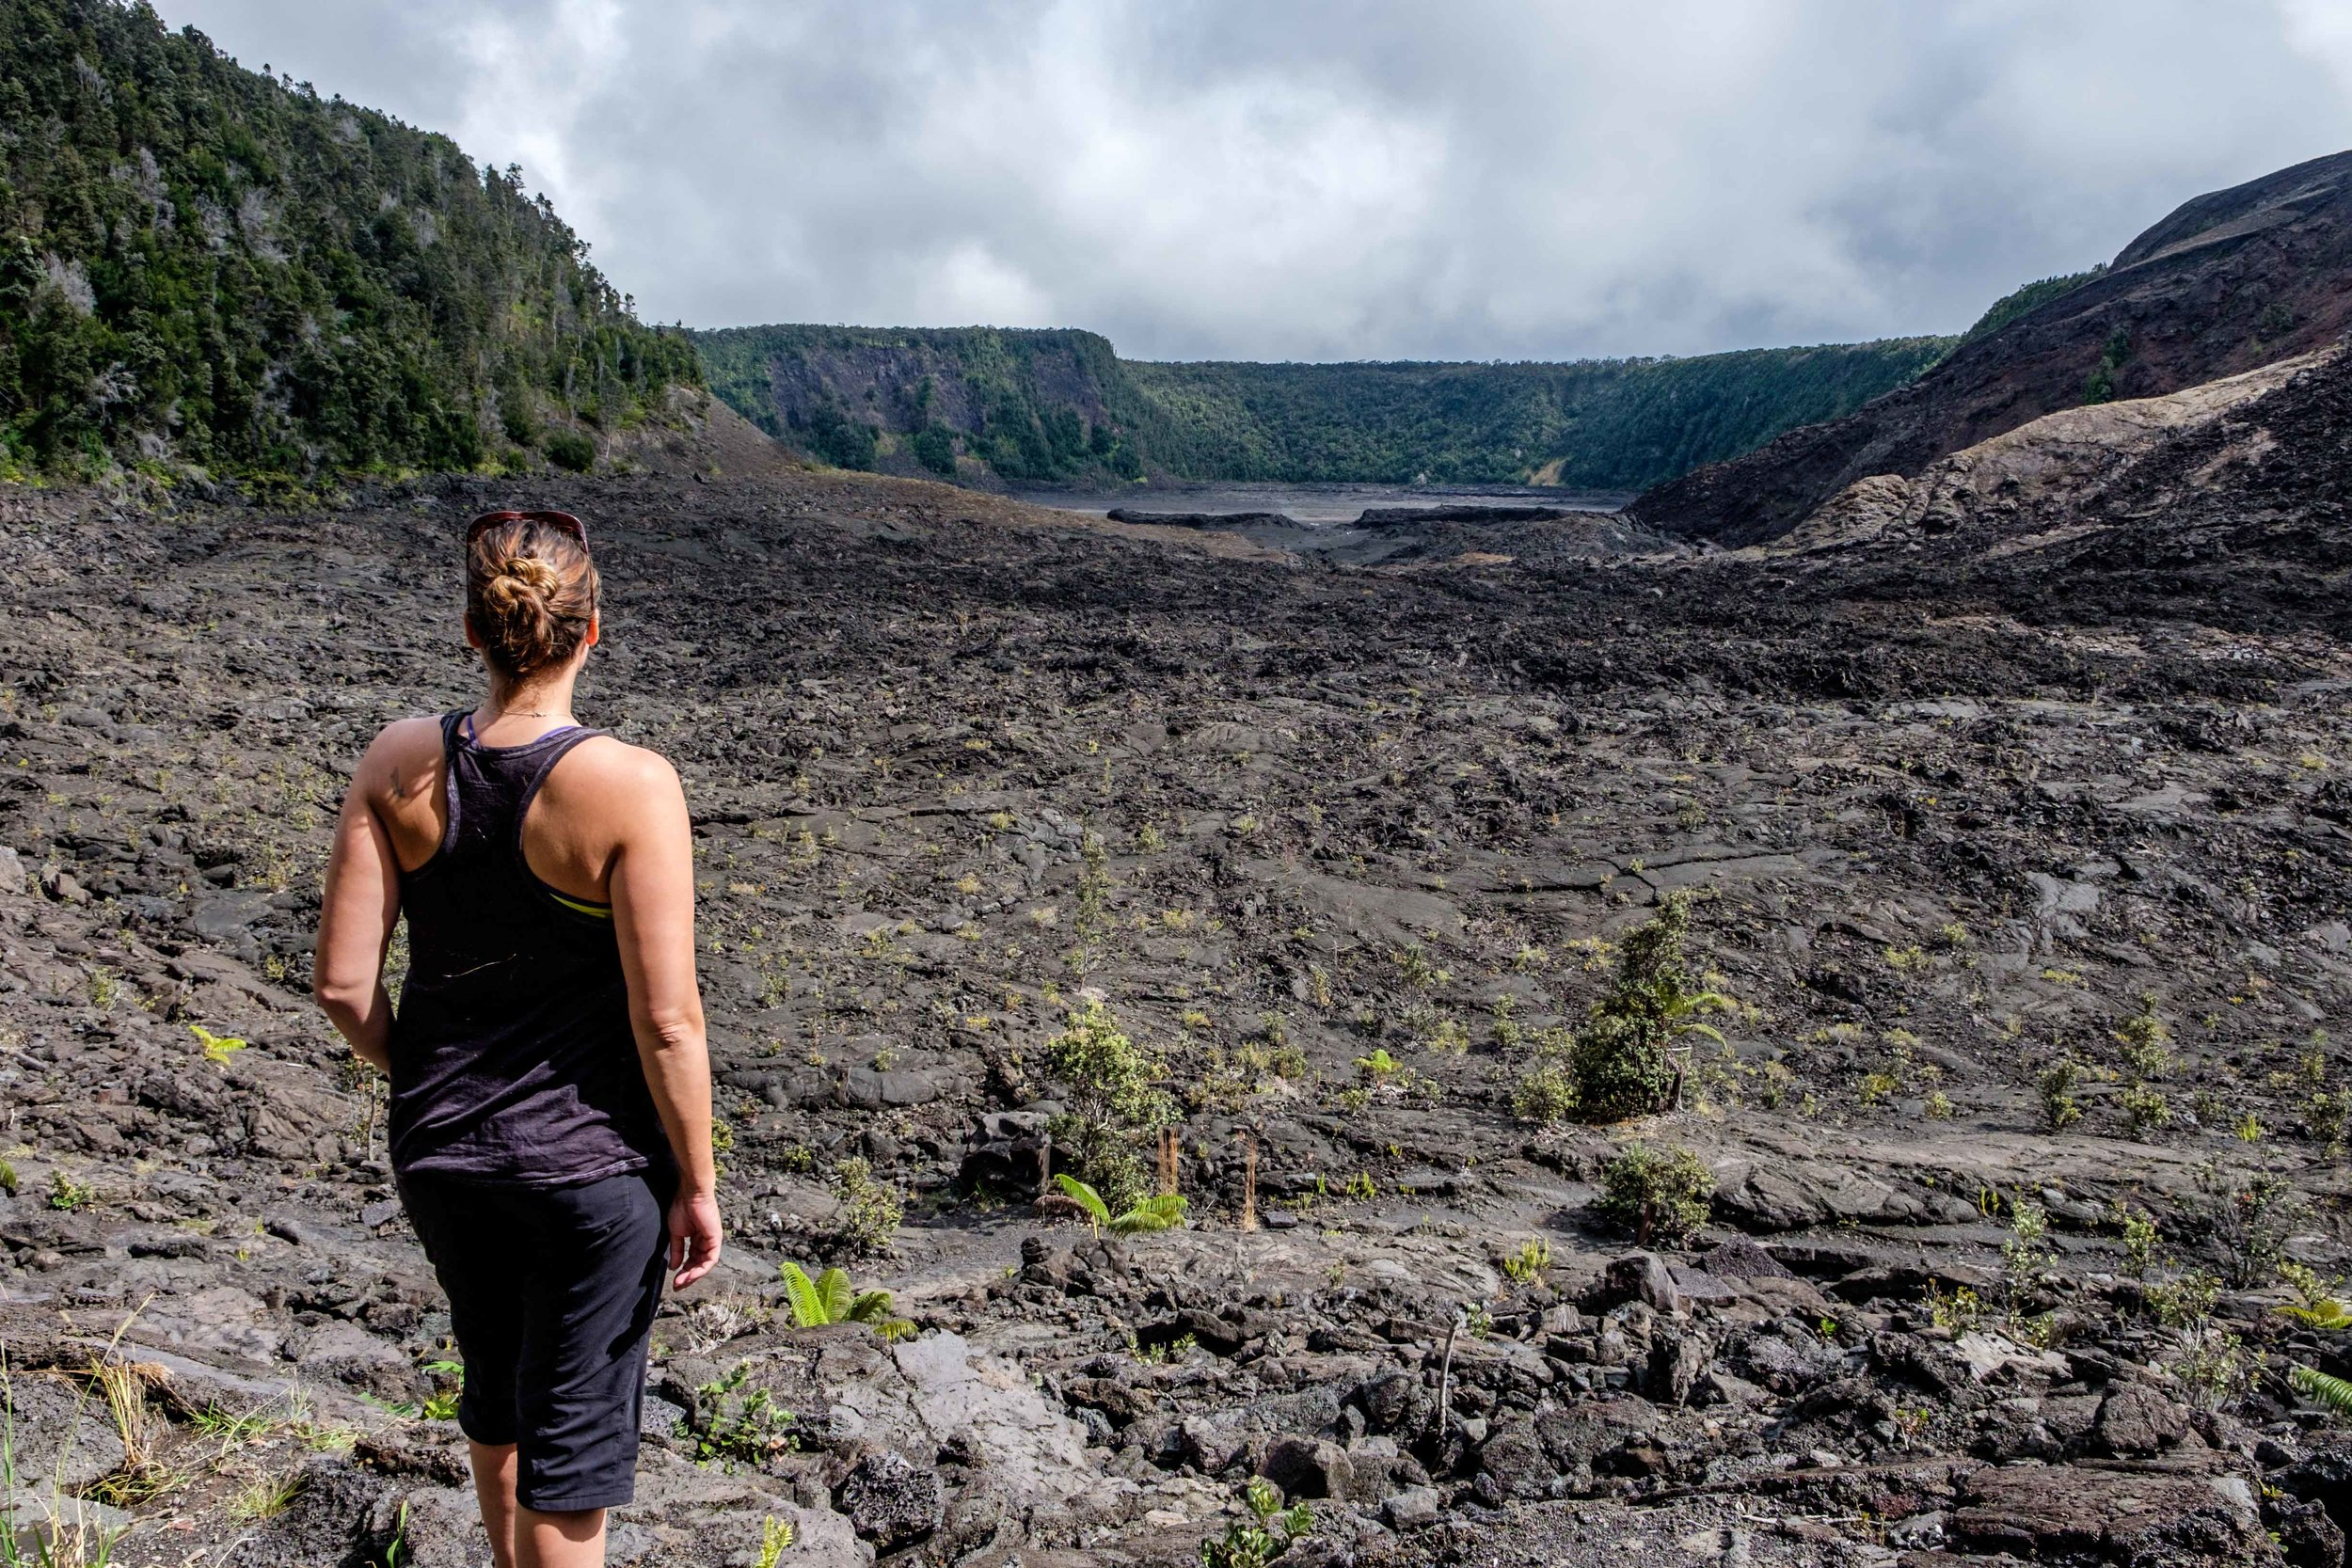 After a 400 foot descent from the crater rim, we started across the steaming crater...